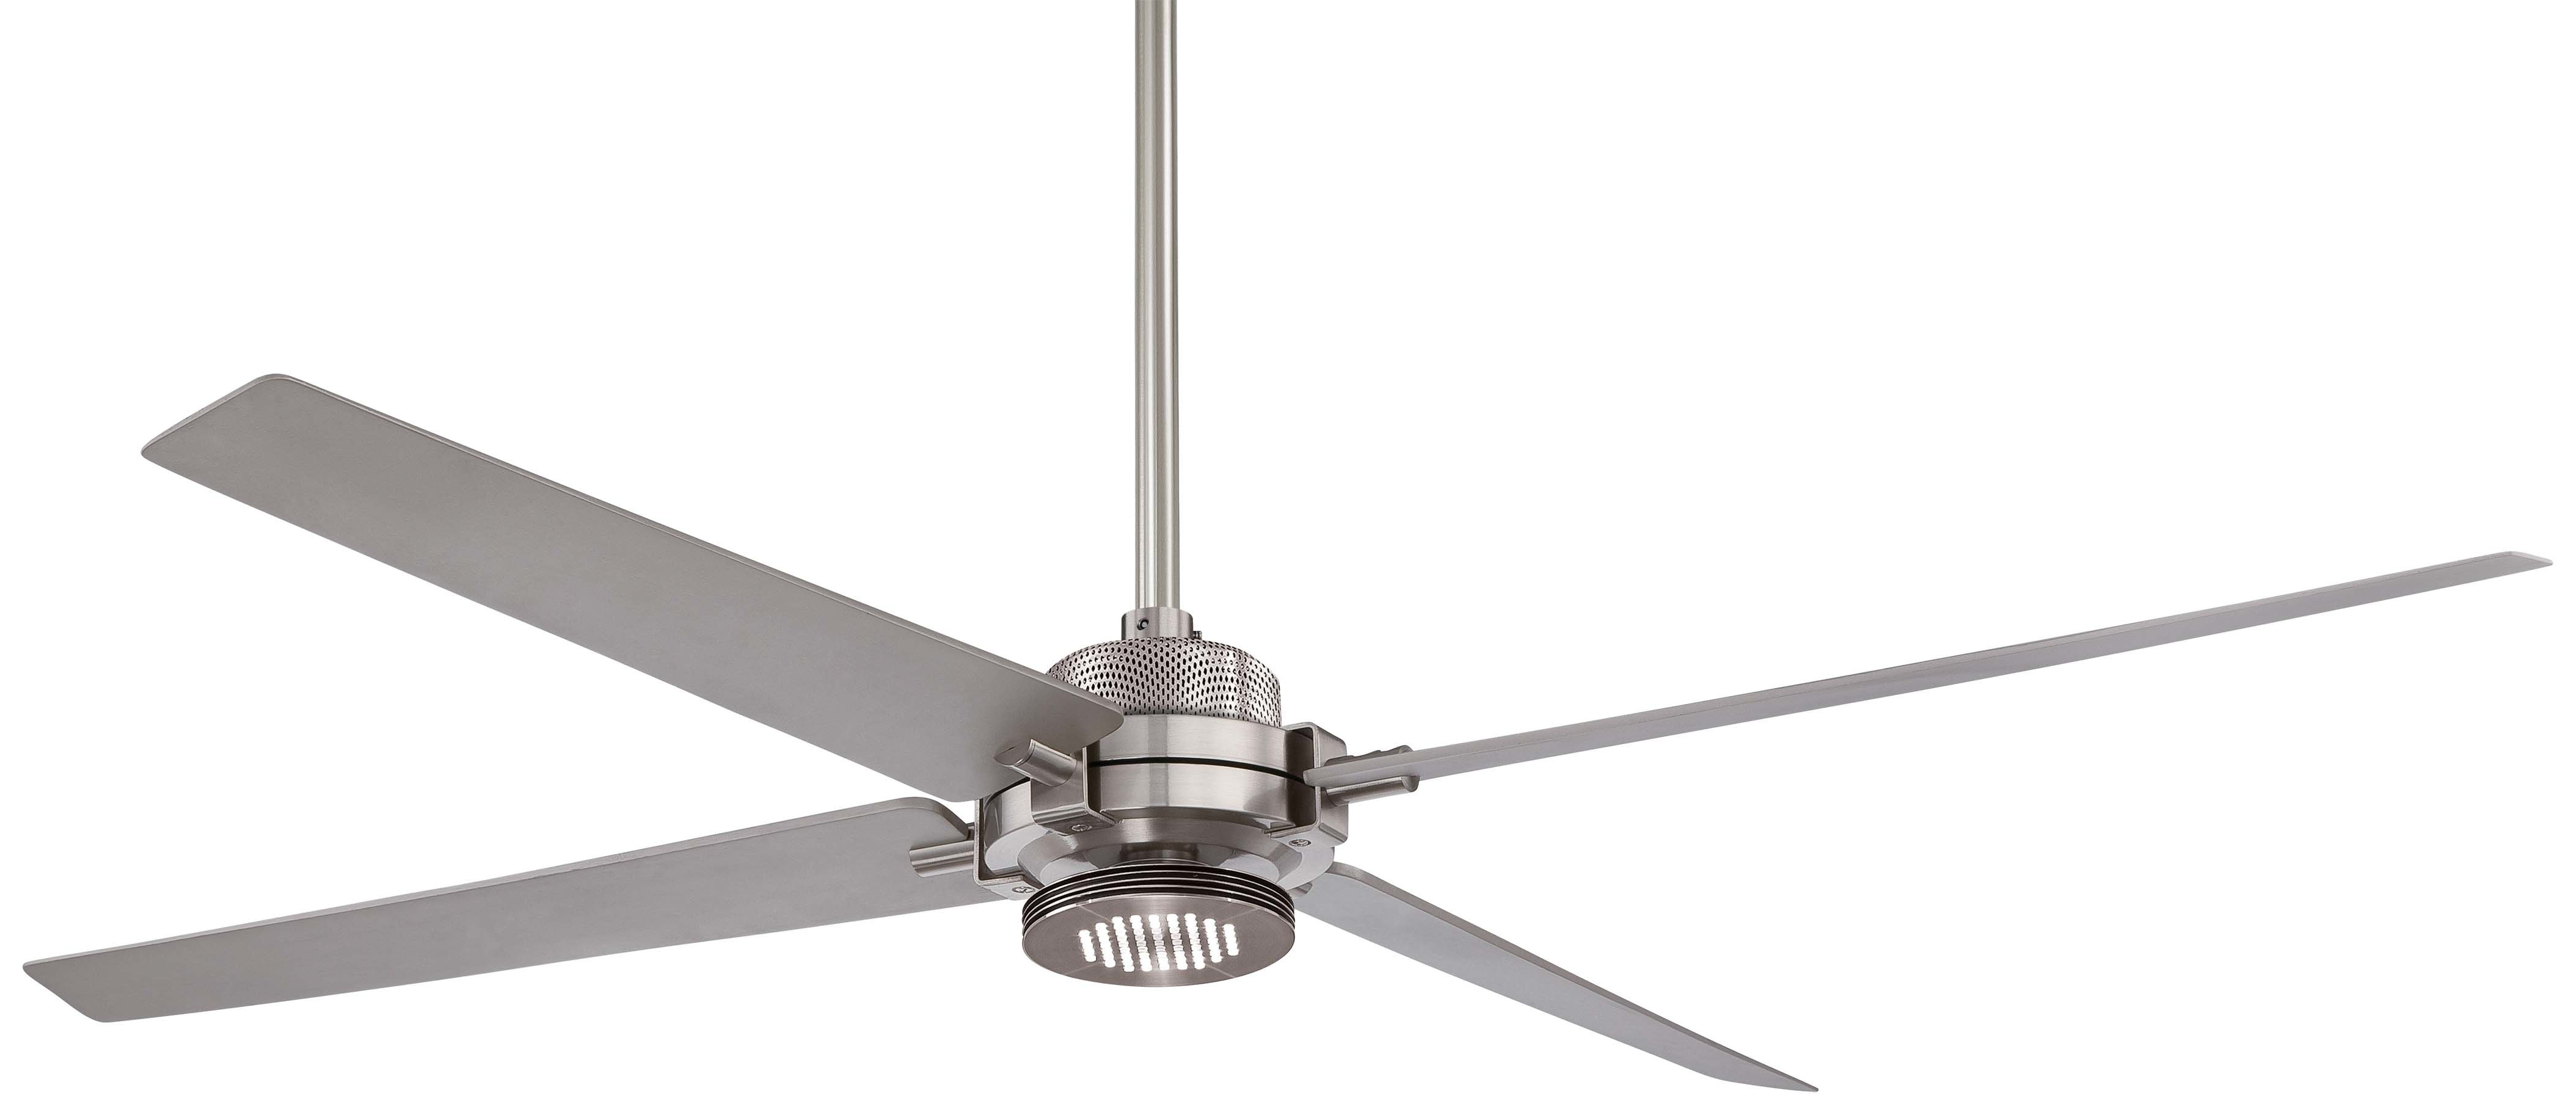 """Symbio 5 Blade Led Ceiling Fans With Most Recent 60"""" Spectre 4 Blade Led Ceiling Fan With Remote, Light Kit Included (View 14 of 20)"""